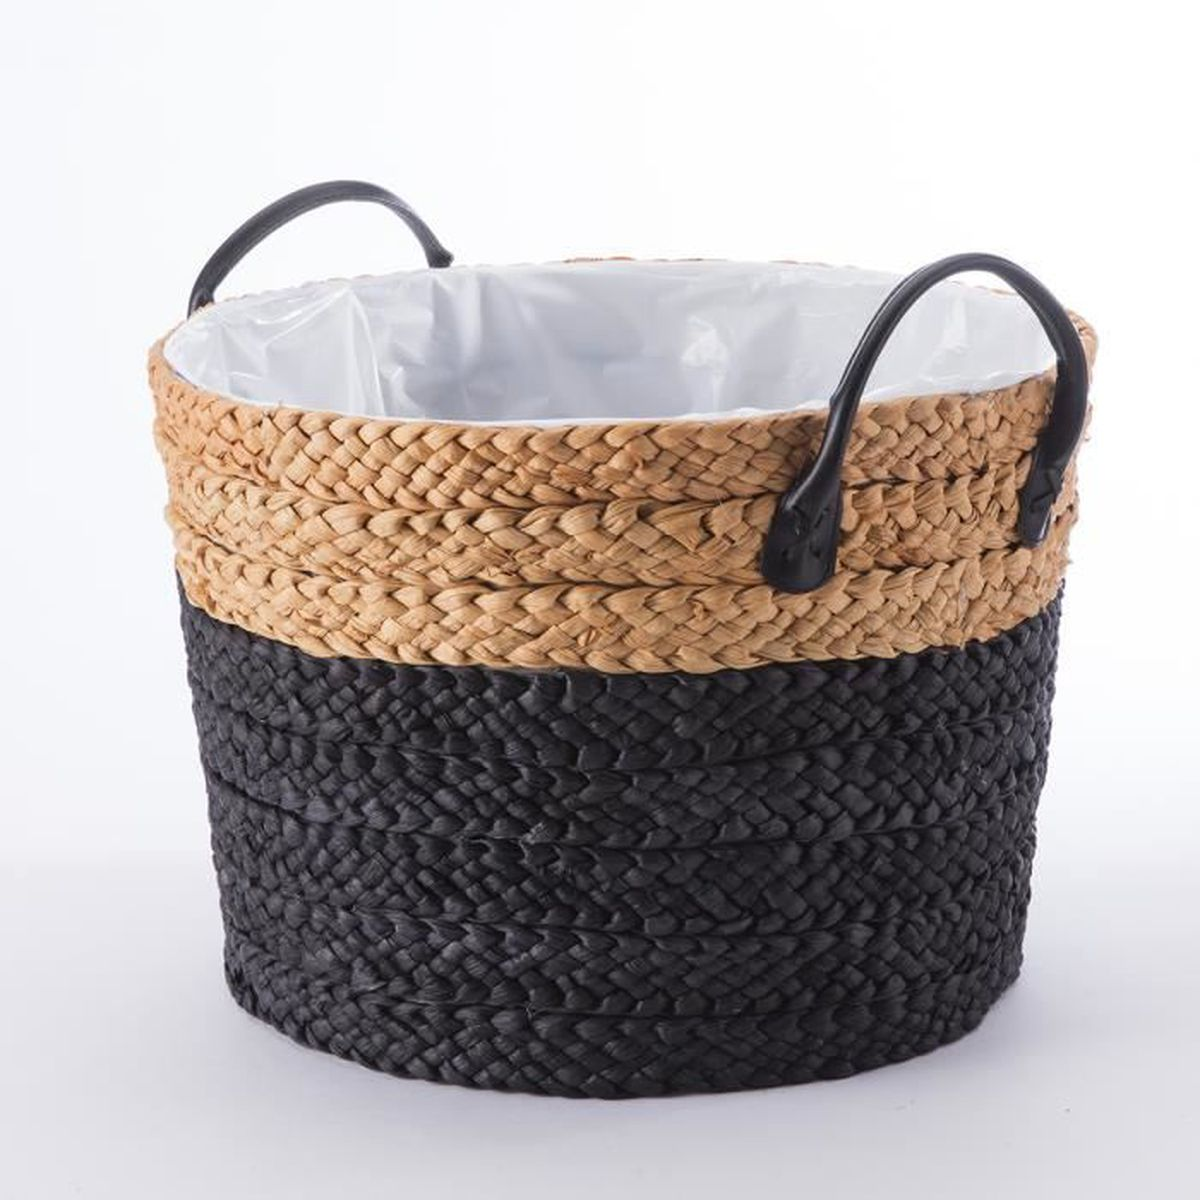 panier cache pot en paille tress e avec anses et int rieur plastifi bicolore d 36cm noir. Black Bedroom Furniture Sets. Home Design Ideas